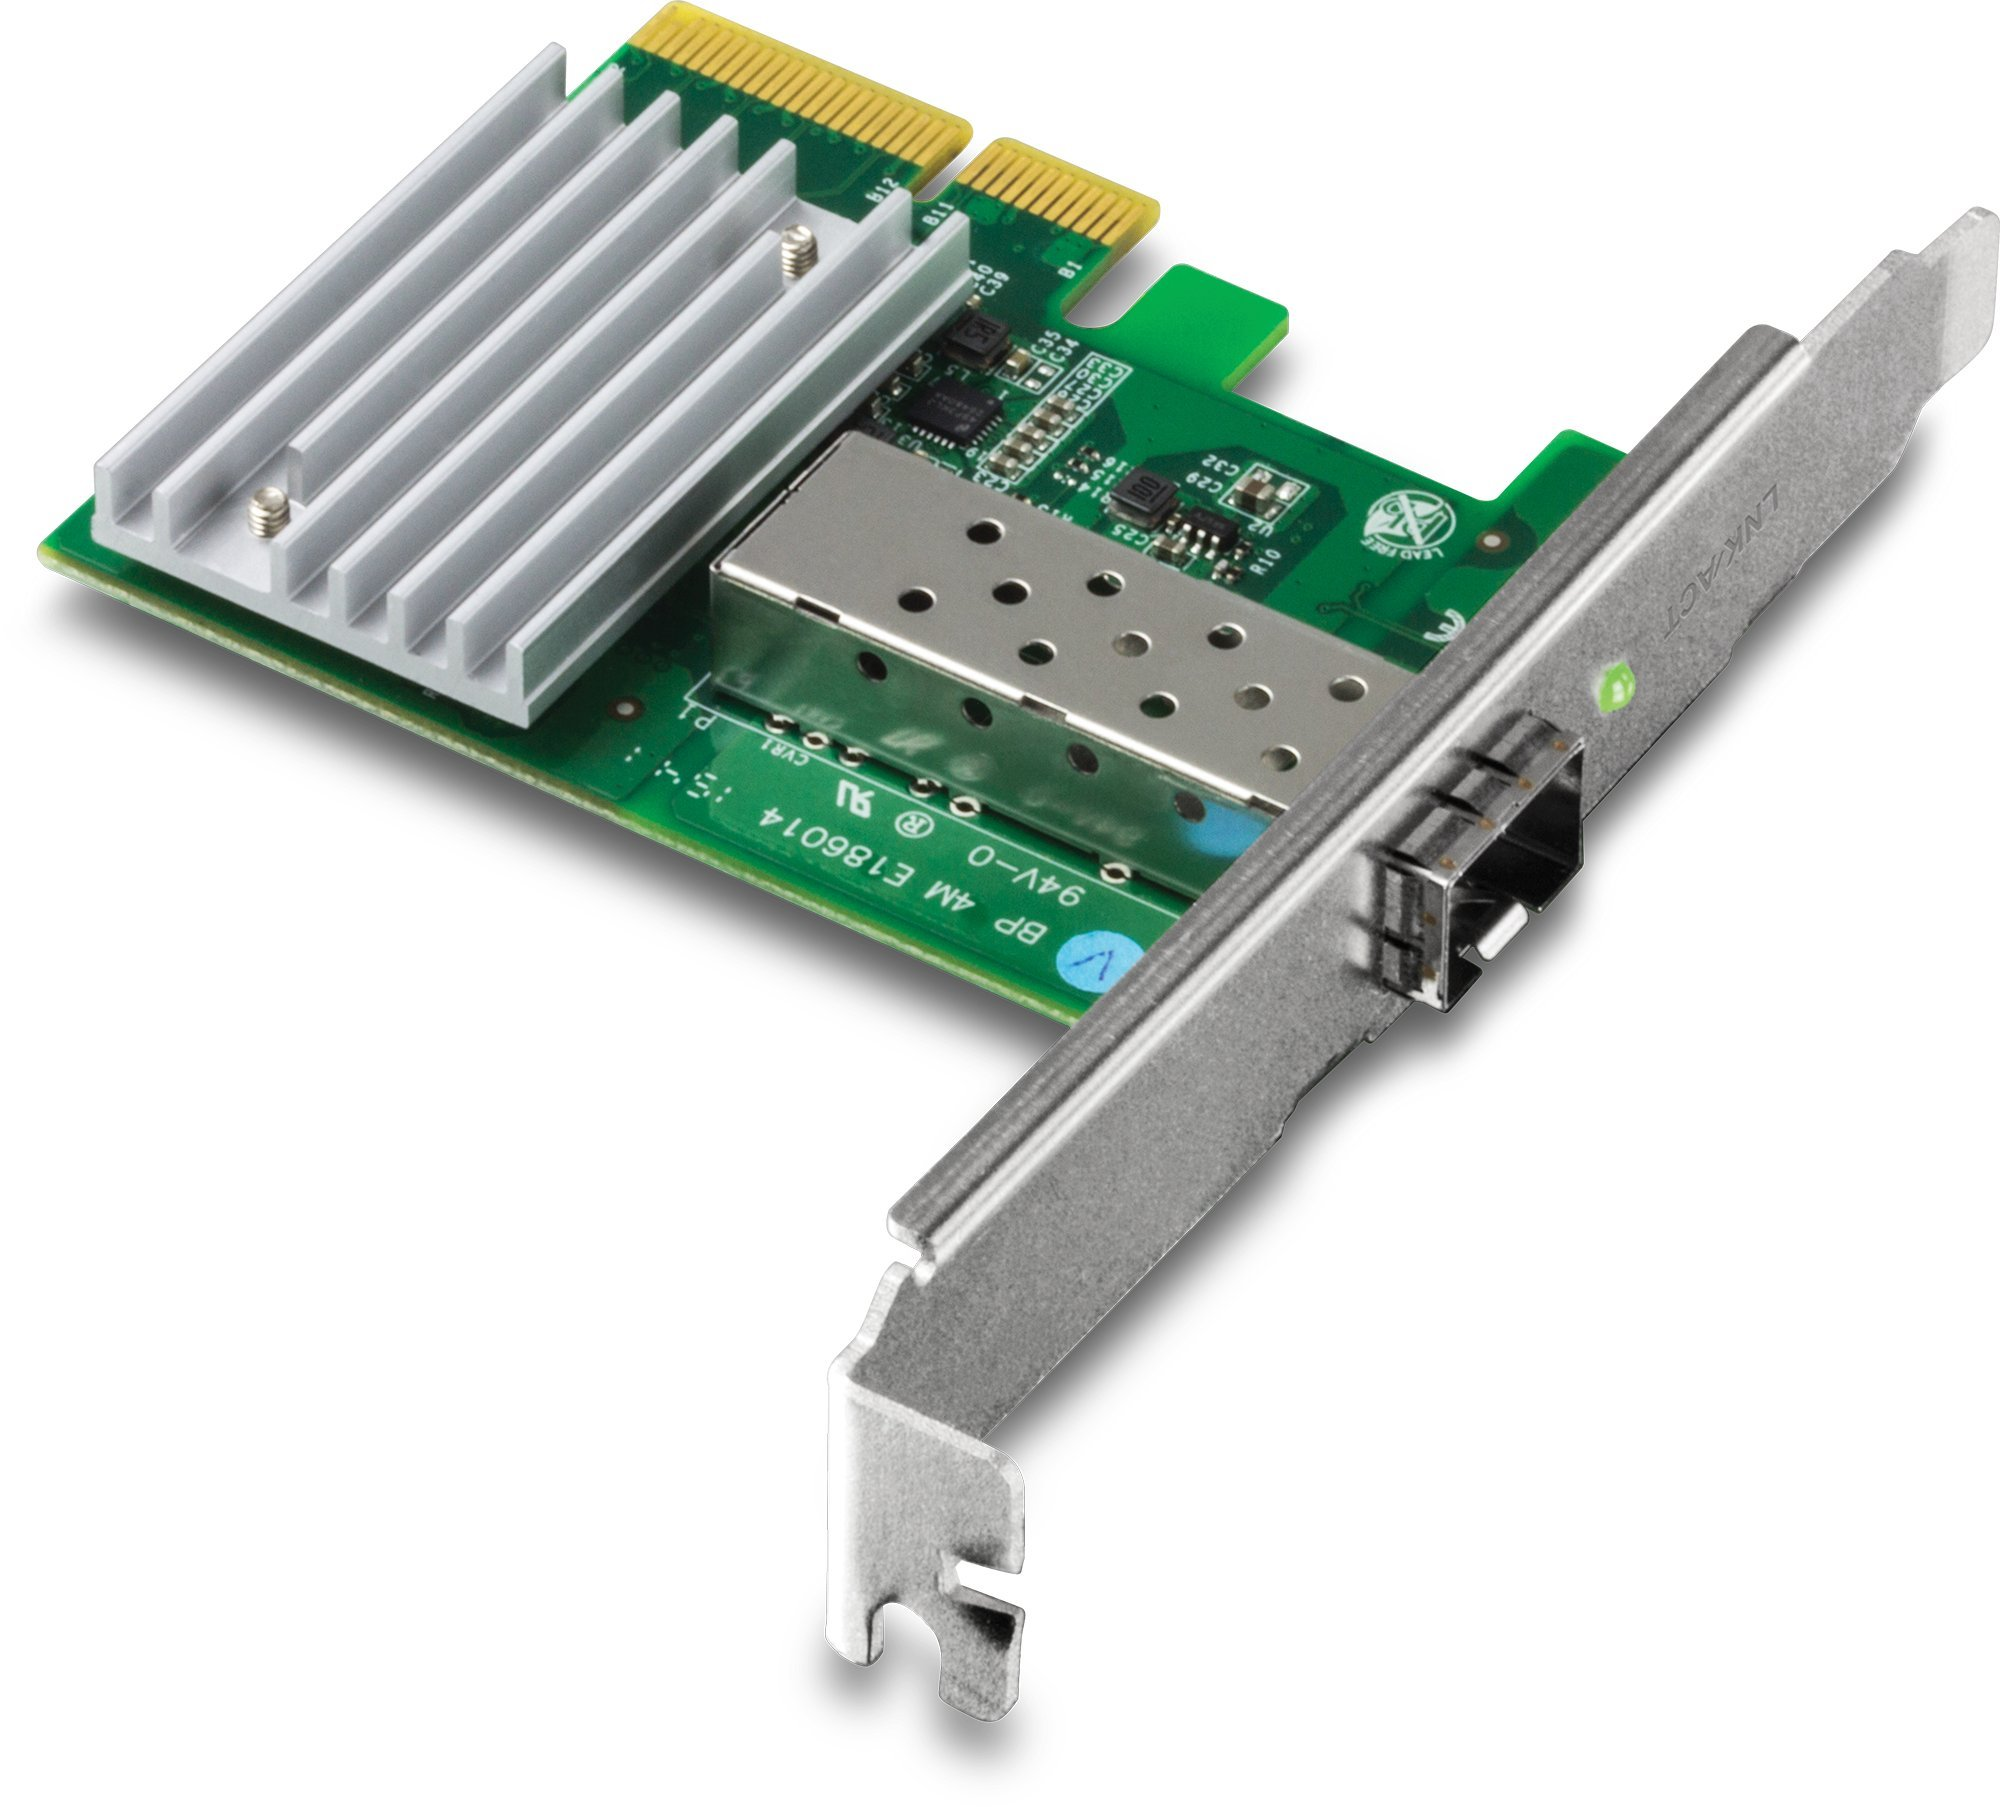 TRENDnet 10 Gigabit PCIe SFP+ Network Adapter - PCI Express 2.0 x4 - 1 Port(s) - Optical Fiber